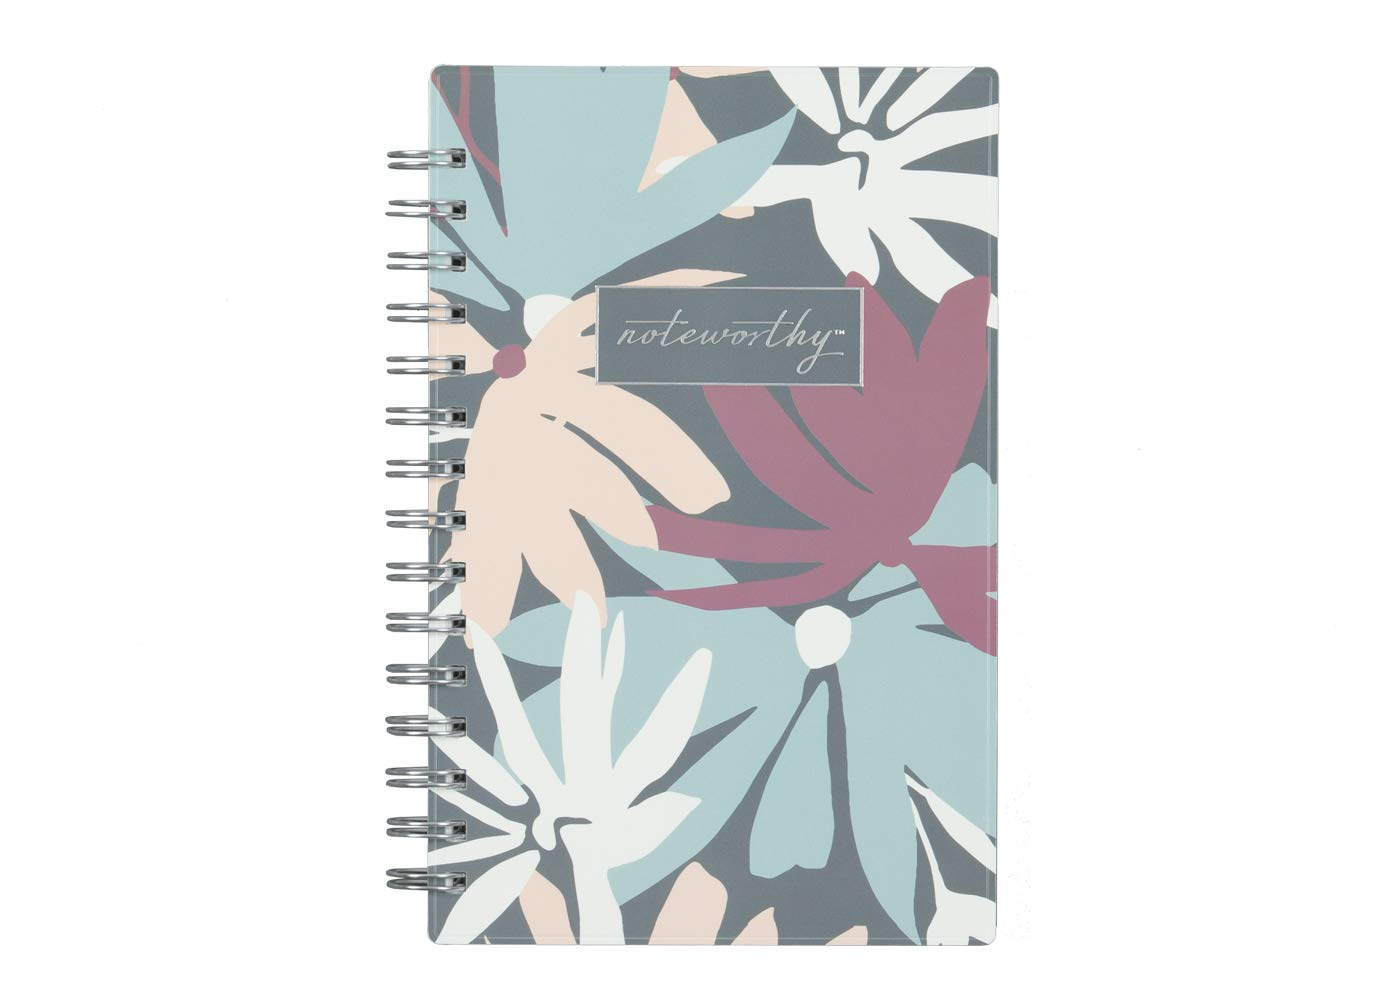 Blue Sky Noteworthy 2019-2020 Academic Year Weekly & Monthly Planner, Durable Flexible Cover, Silver-Tone Twin-Wire Binding, 5'' x 8'', Britt